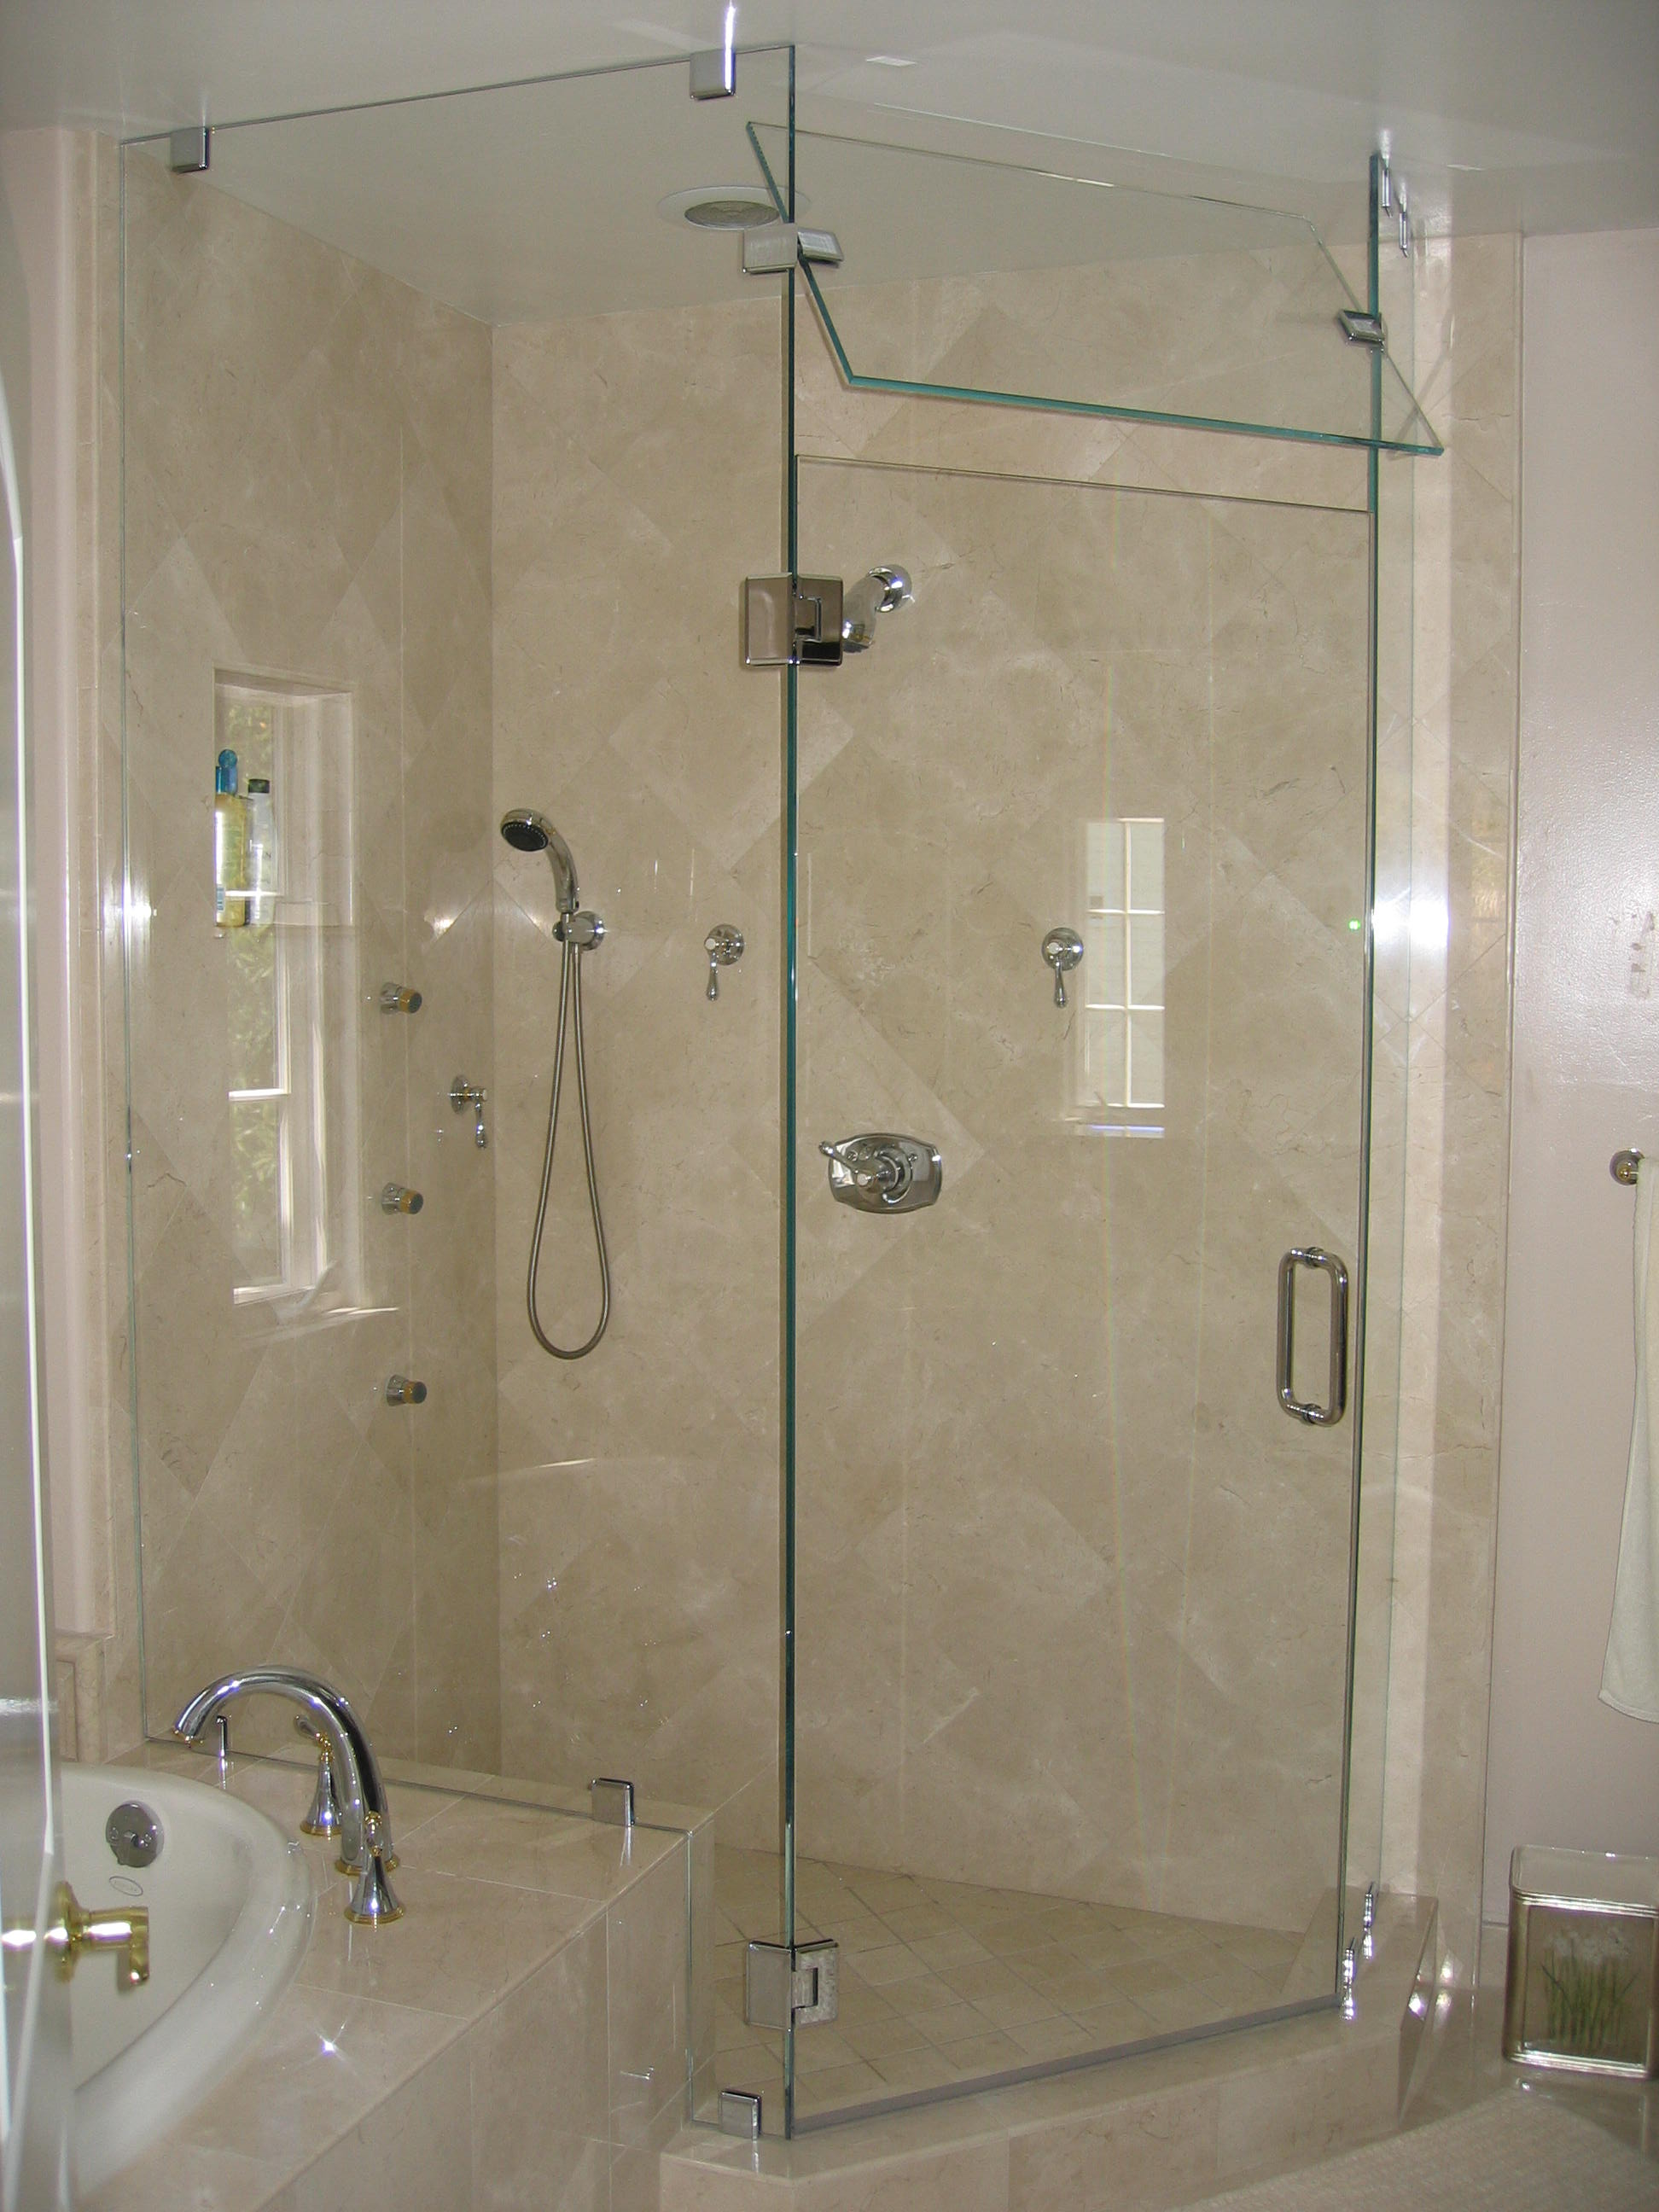 Installing custom shower doors virginia beach va Bathroom glass doors design